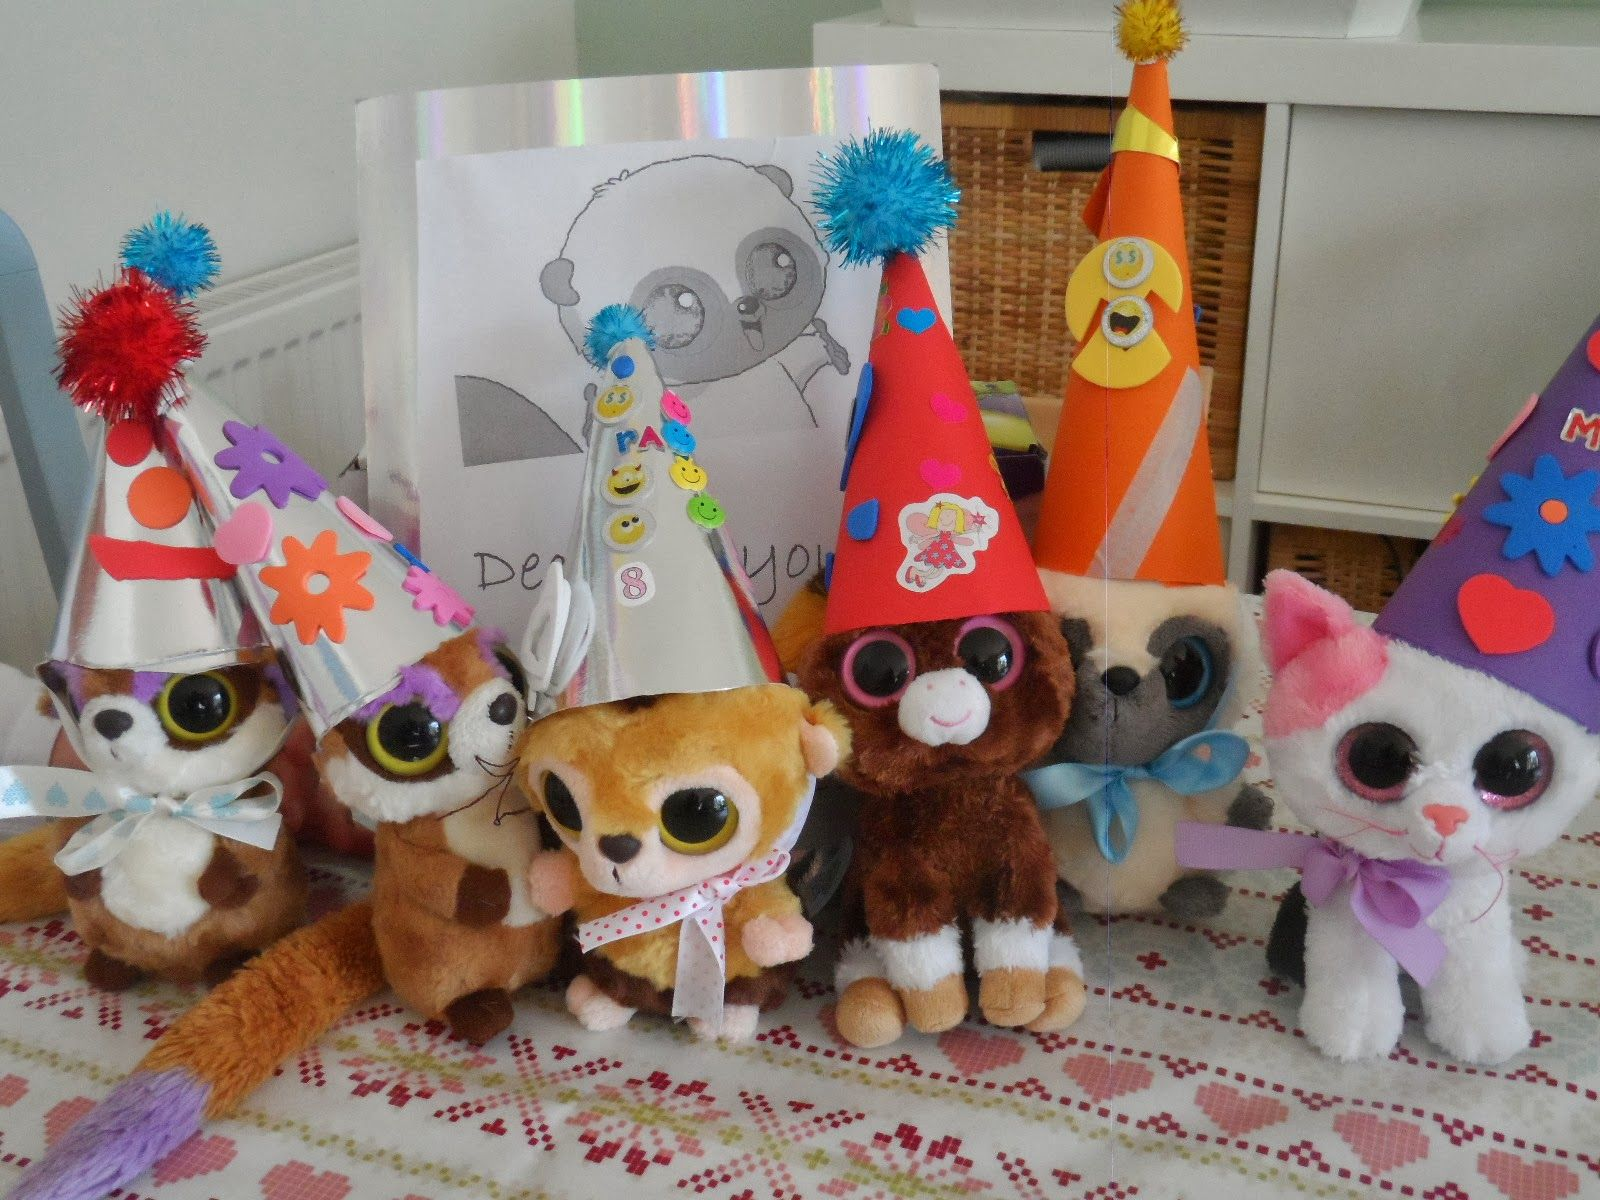 beanie boos themed birthday party - Google Search